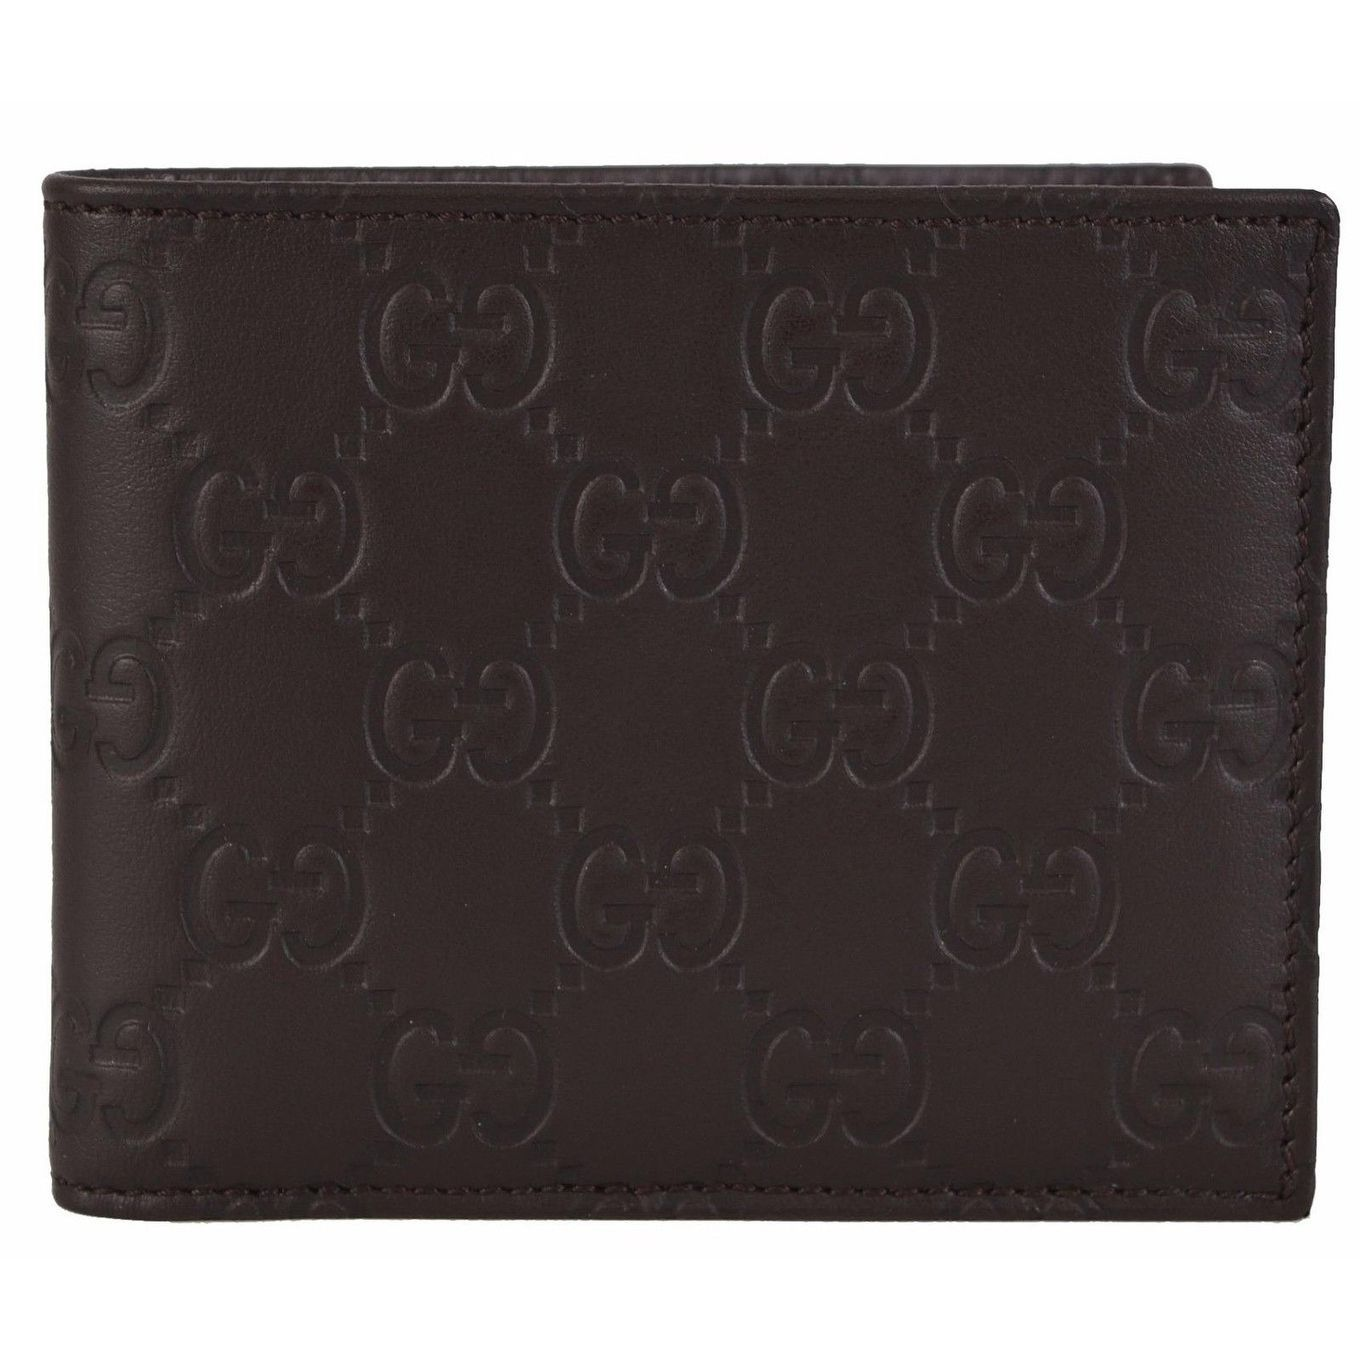 a0062bc04485 NEW Gucci 260987 Men39s GG Guccissima Bifold Wallet Products